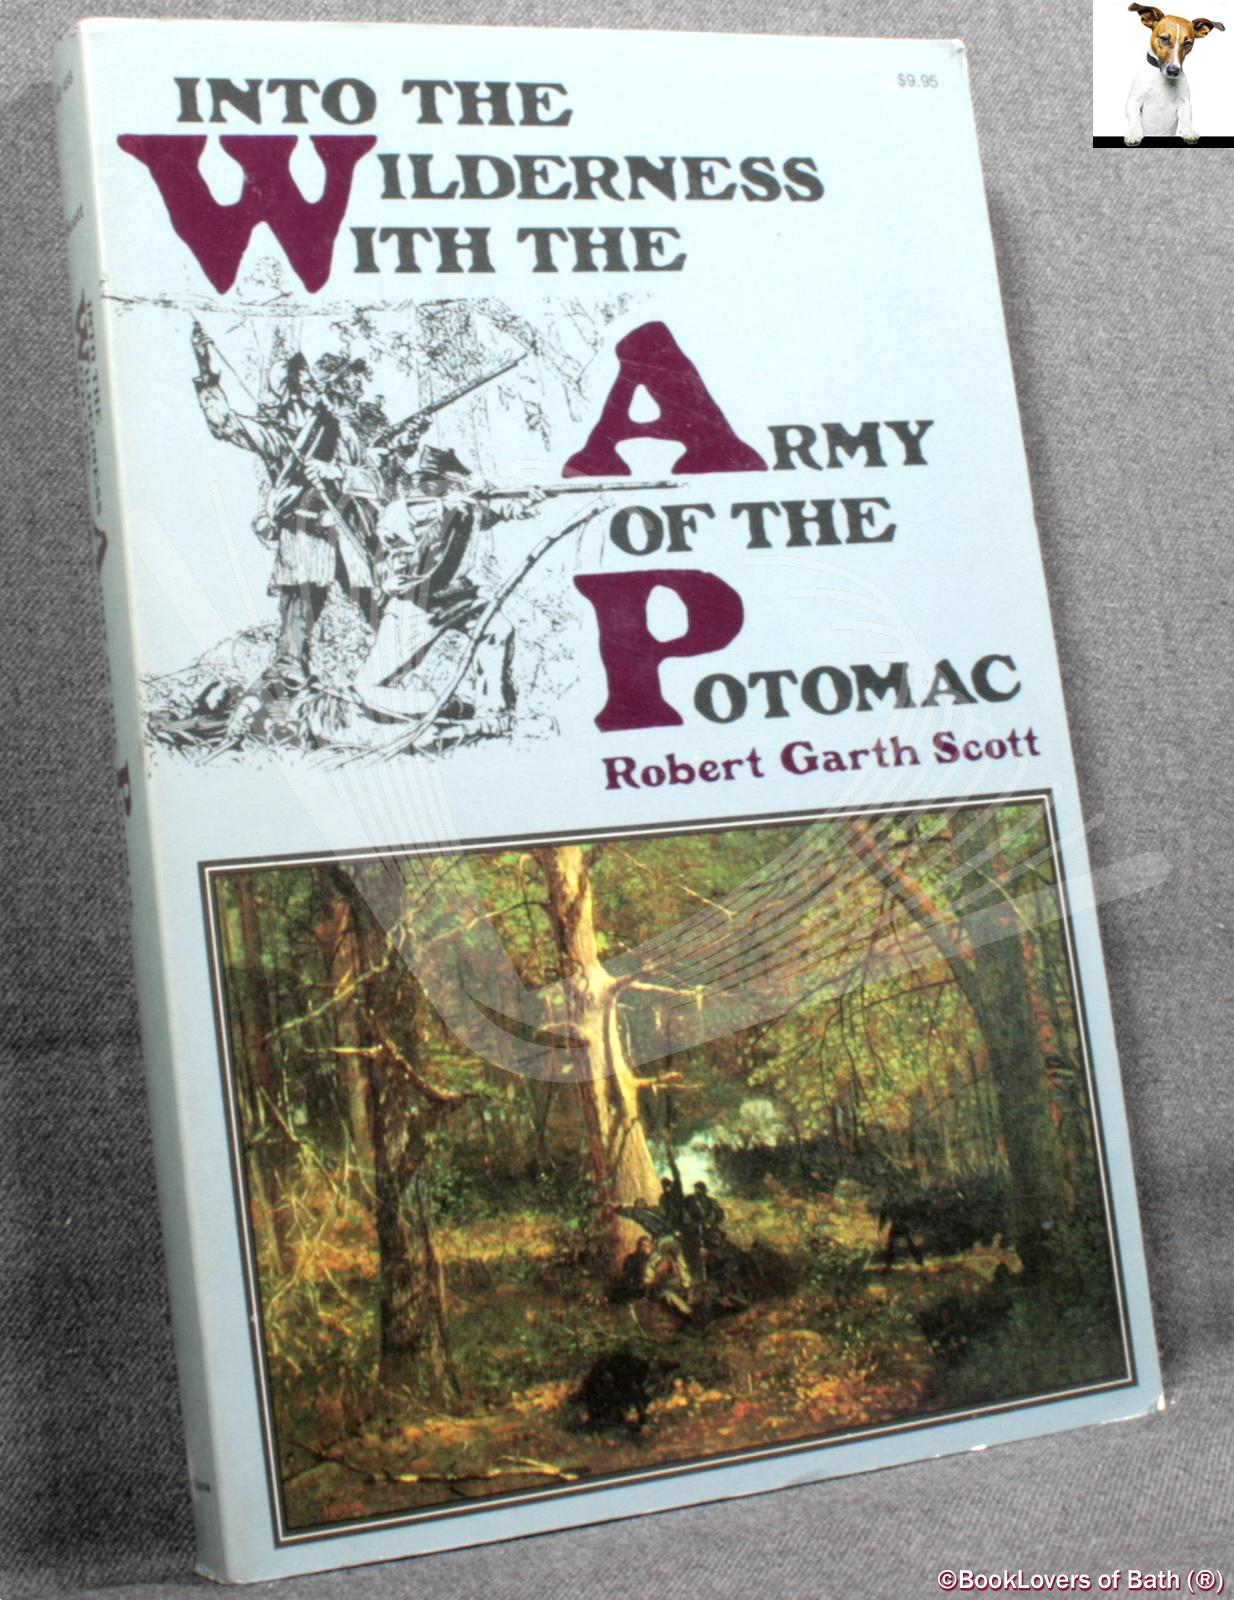 Into the Wilderness with the Army of the Potomac - Robert Garth Scott